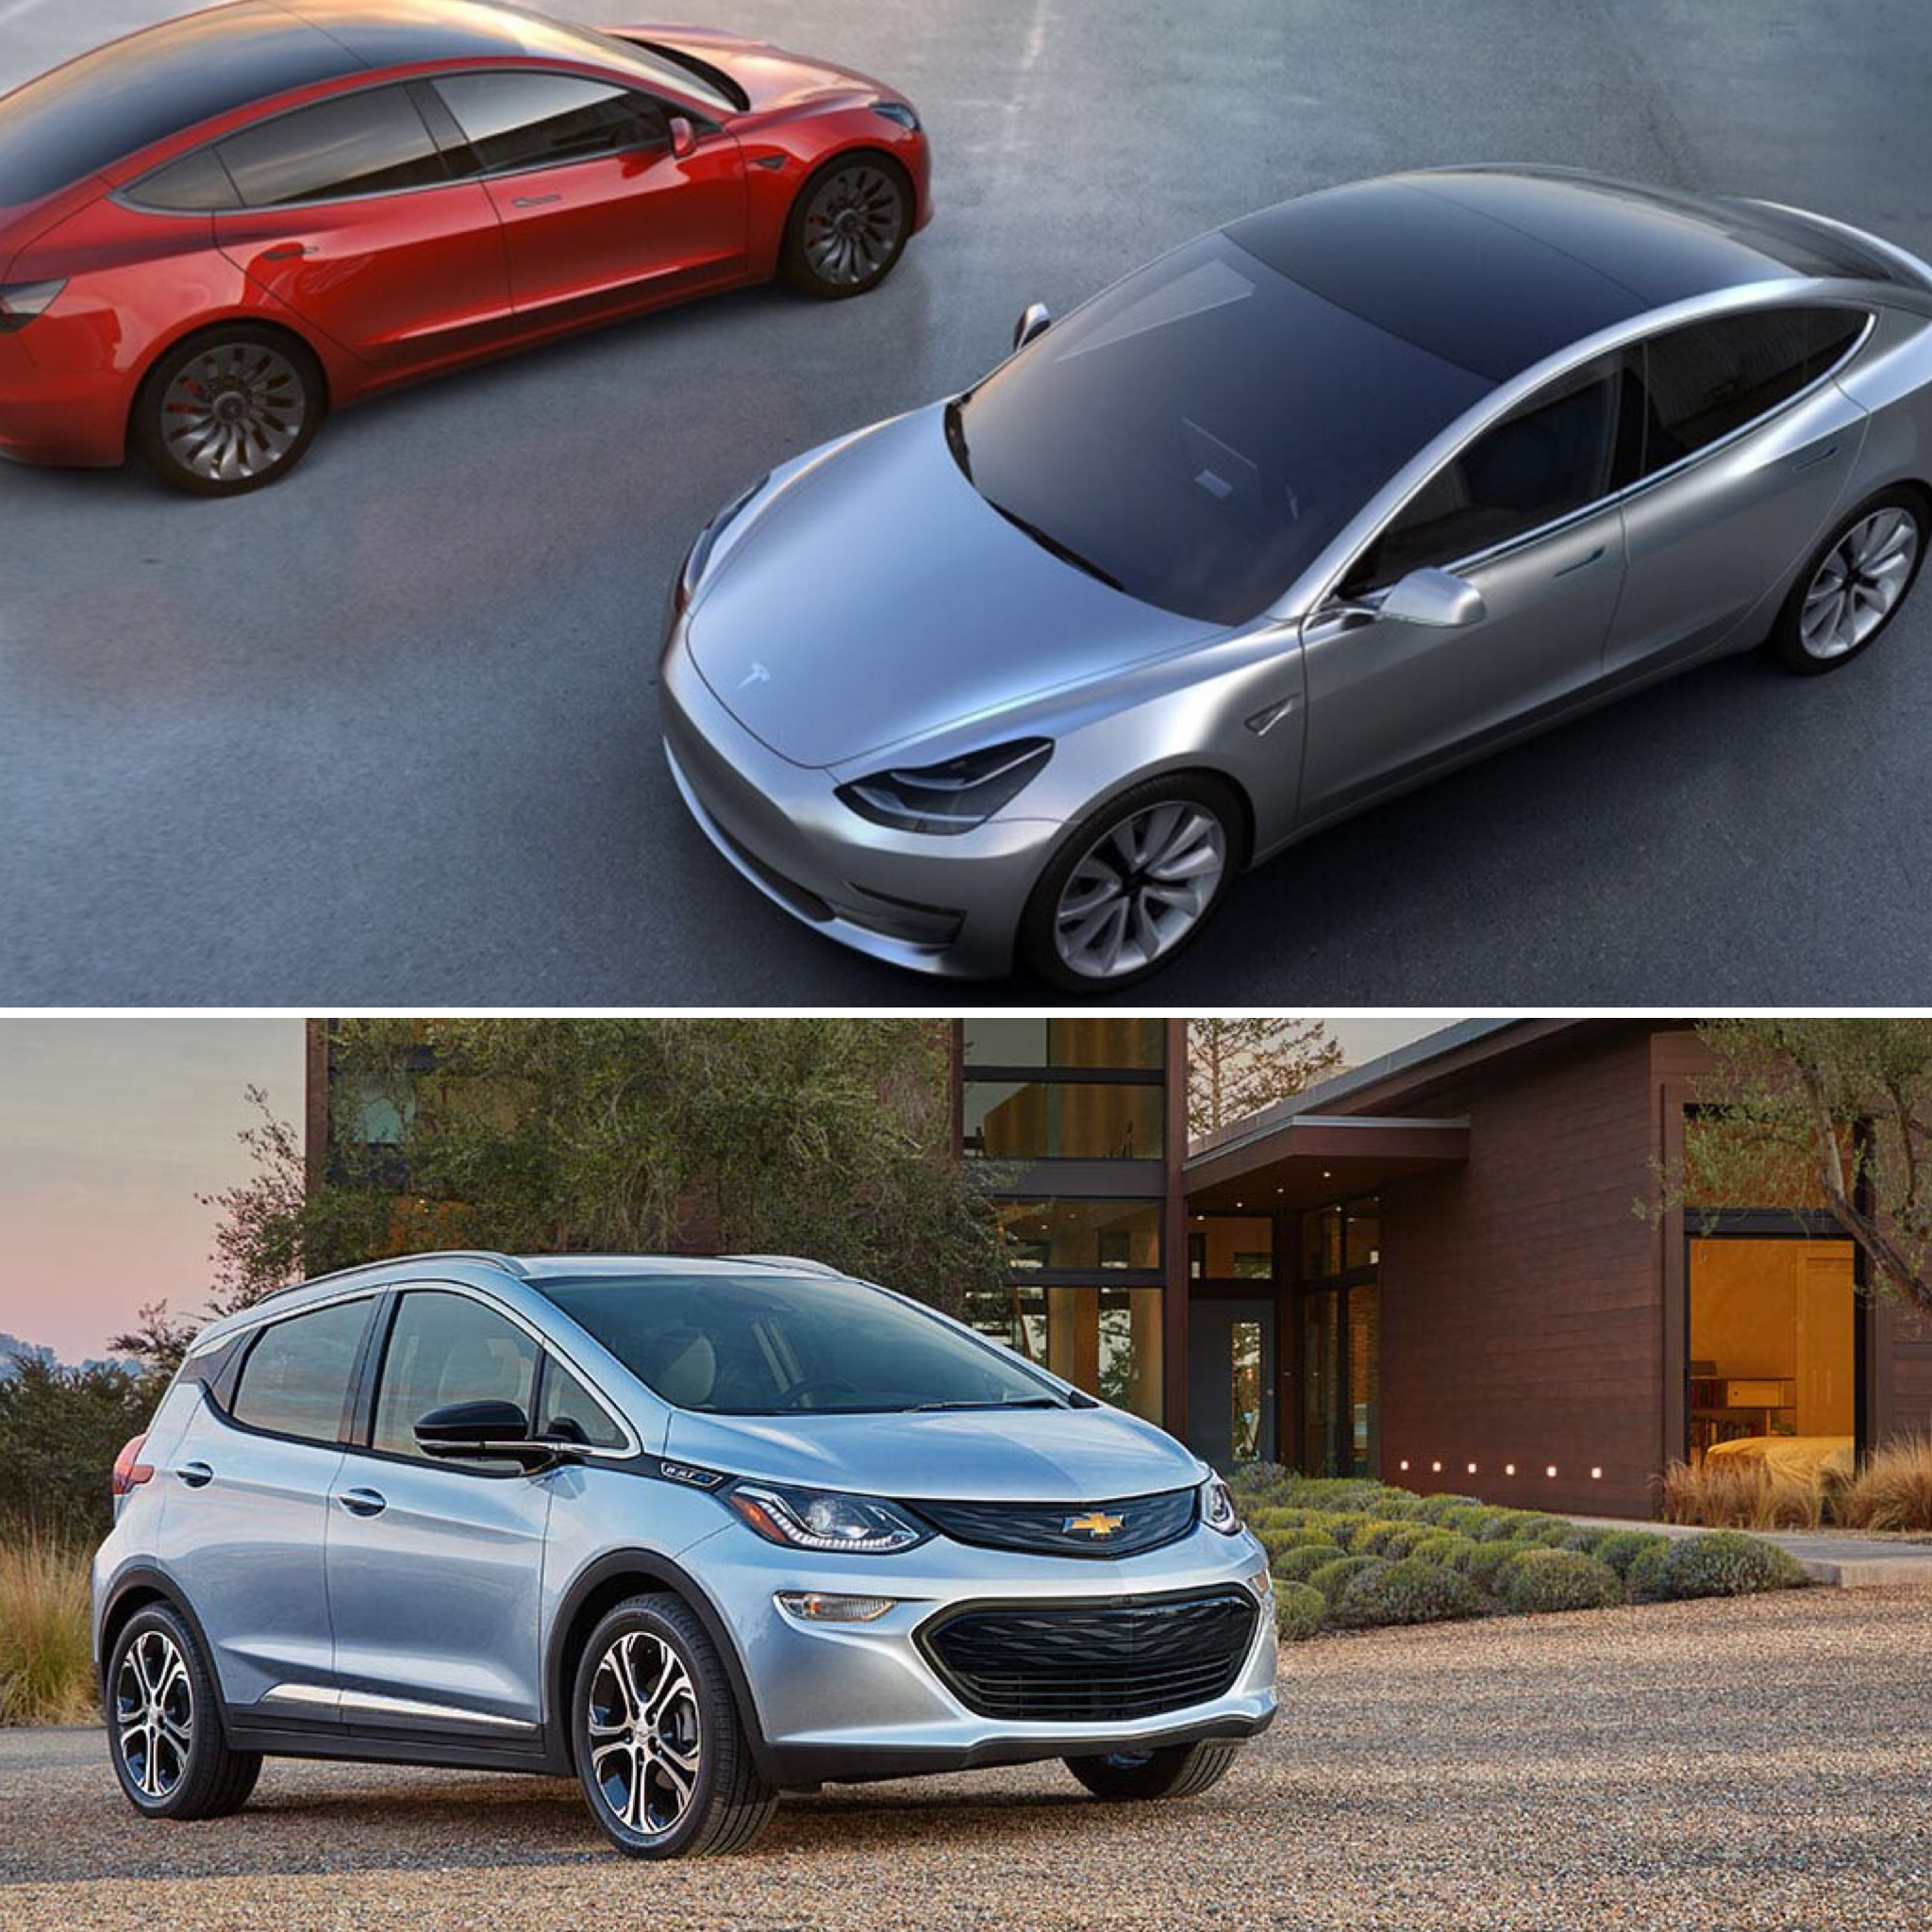 Long Range EV – Tesla Model 3 and Chevy Bolt